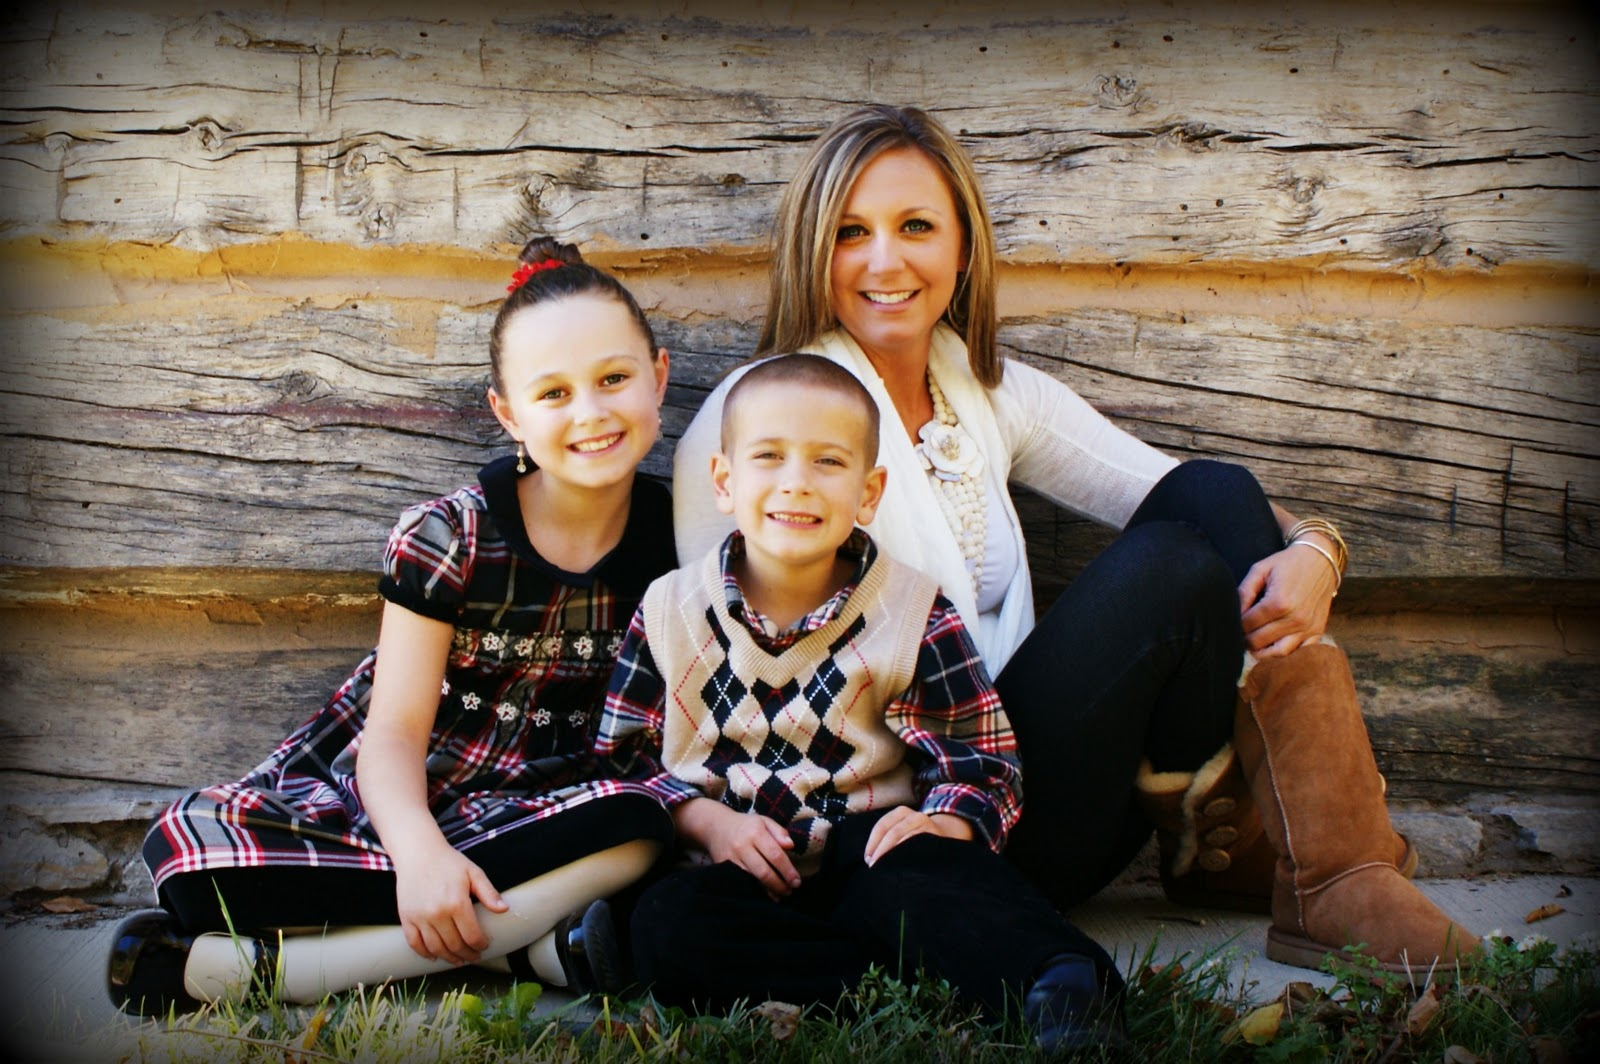 Fall Family Photo Outfit Ideas http://www.hollytomlinson.com/2010/10/hurt-family-fall-2010.html